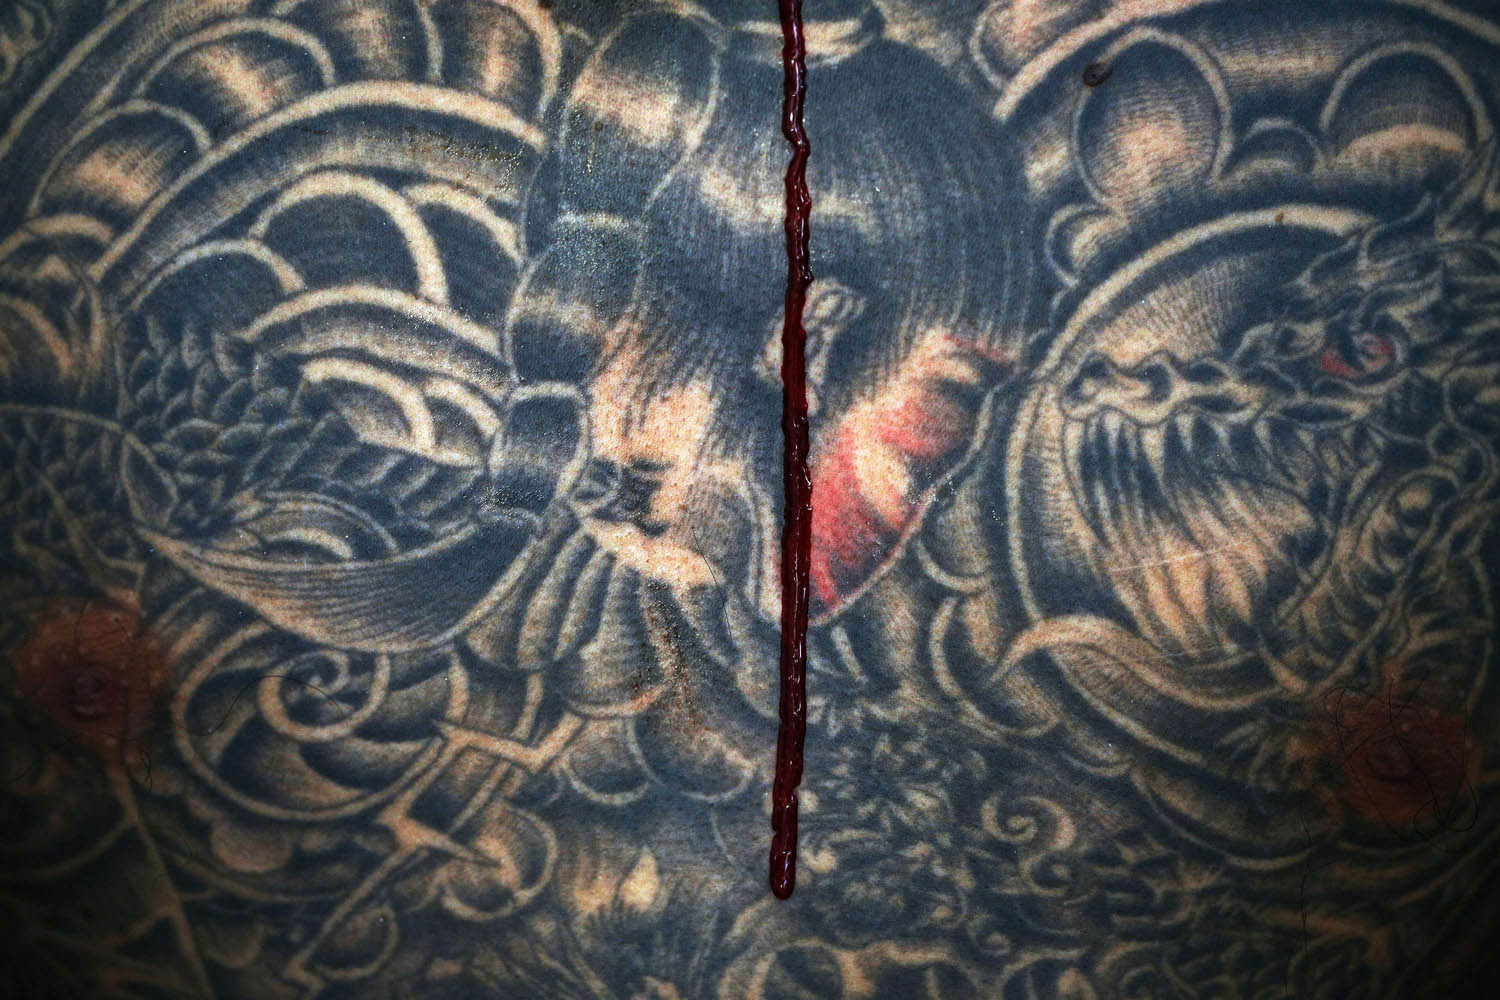 Oct. 10, 2013. Blood trickles down the tattooed torso of a devotee of the Chinese Bang Neow Shrine as he is pierced before the beginning of a street procession during the annual vegetarian festival in Phuket, Thailand.